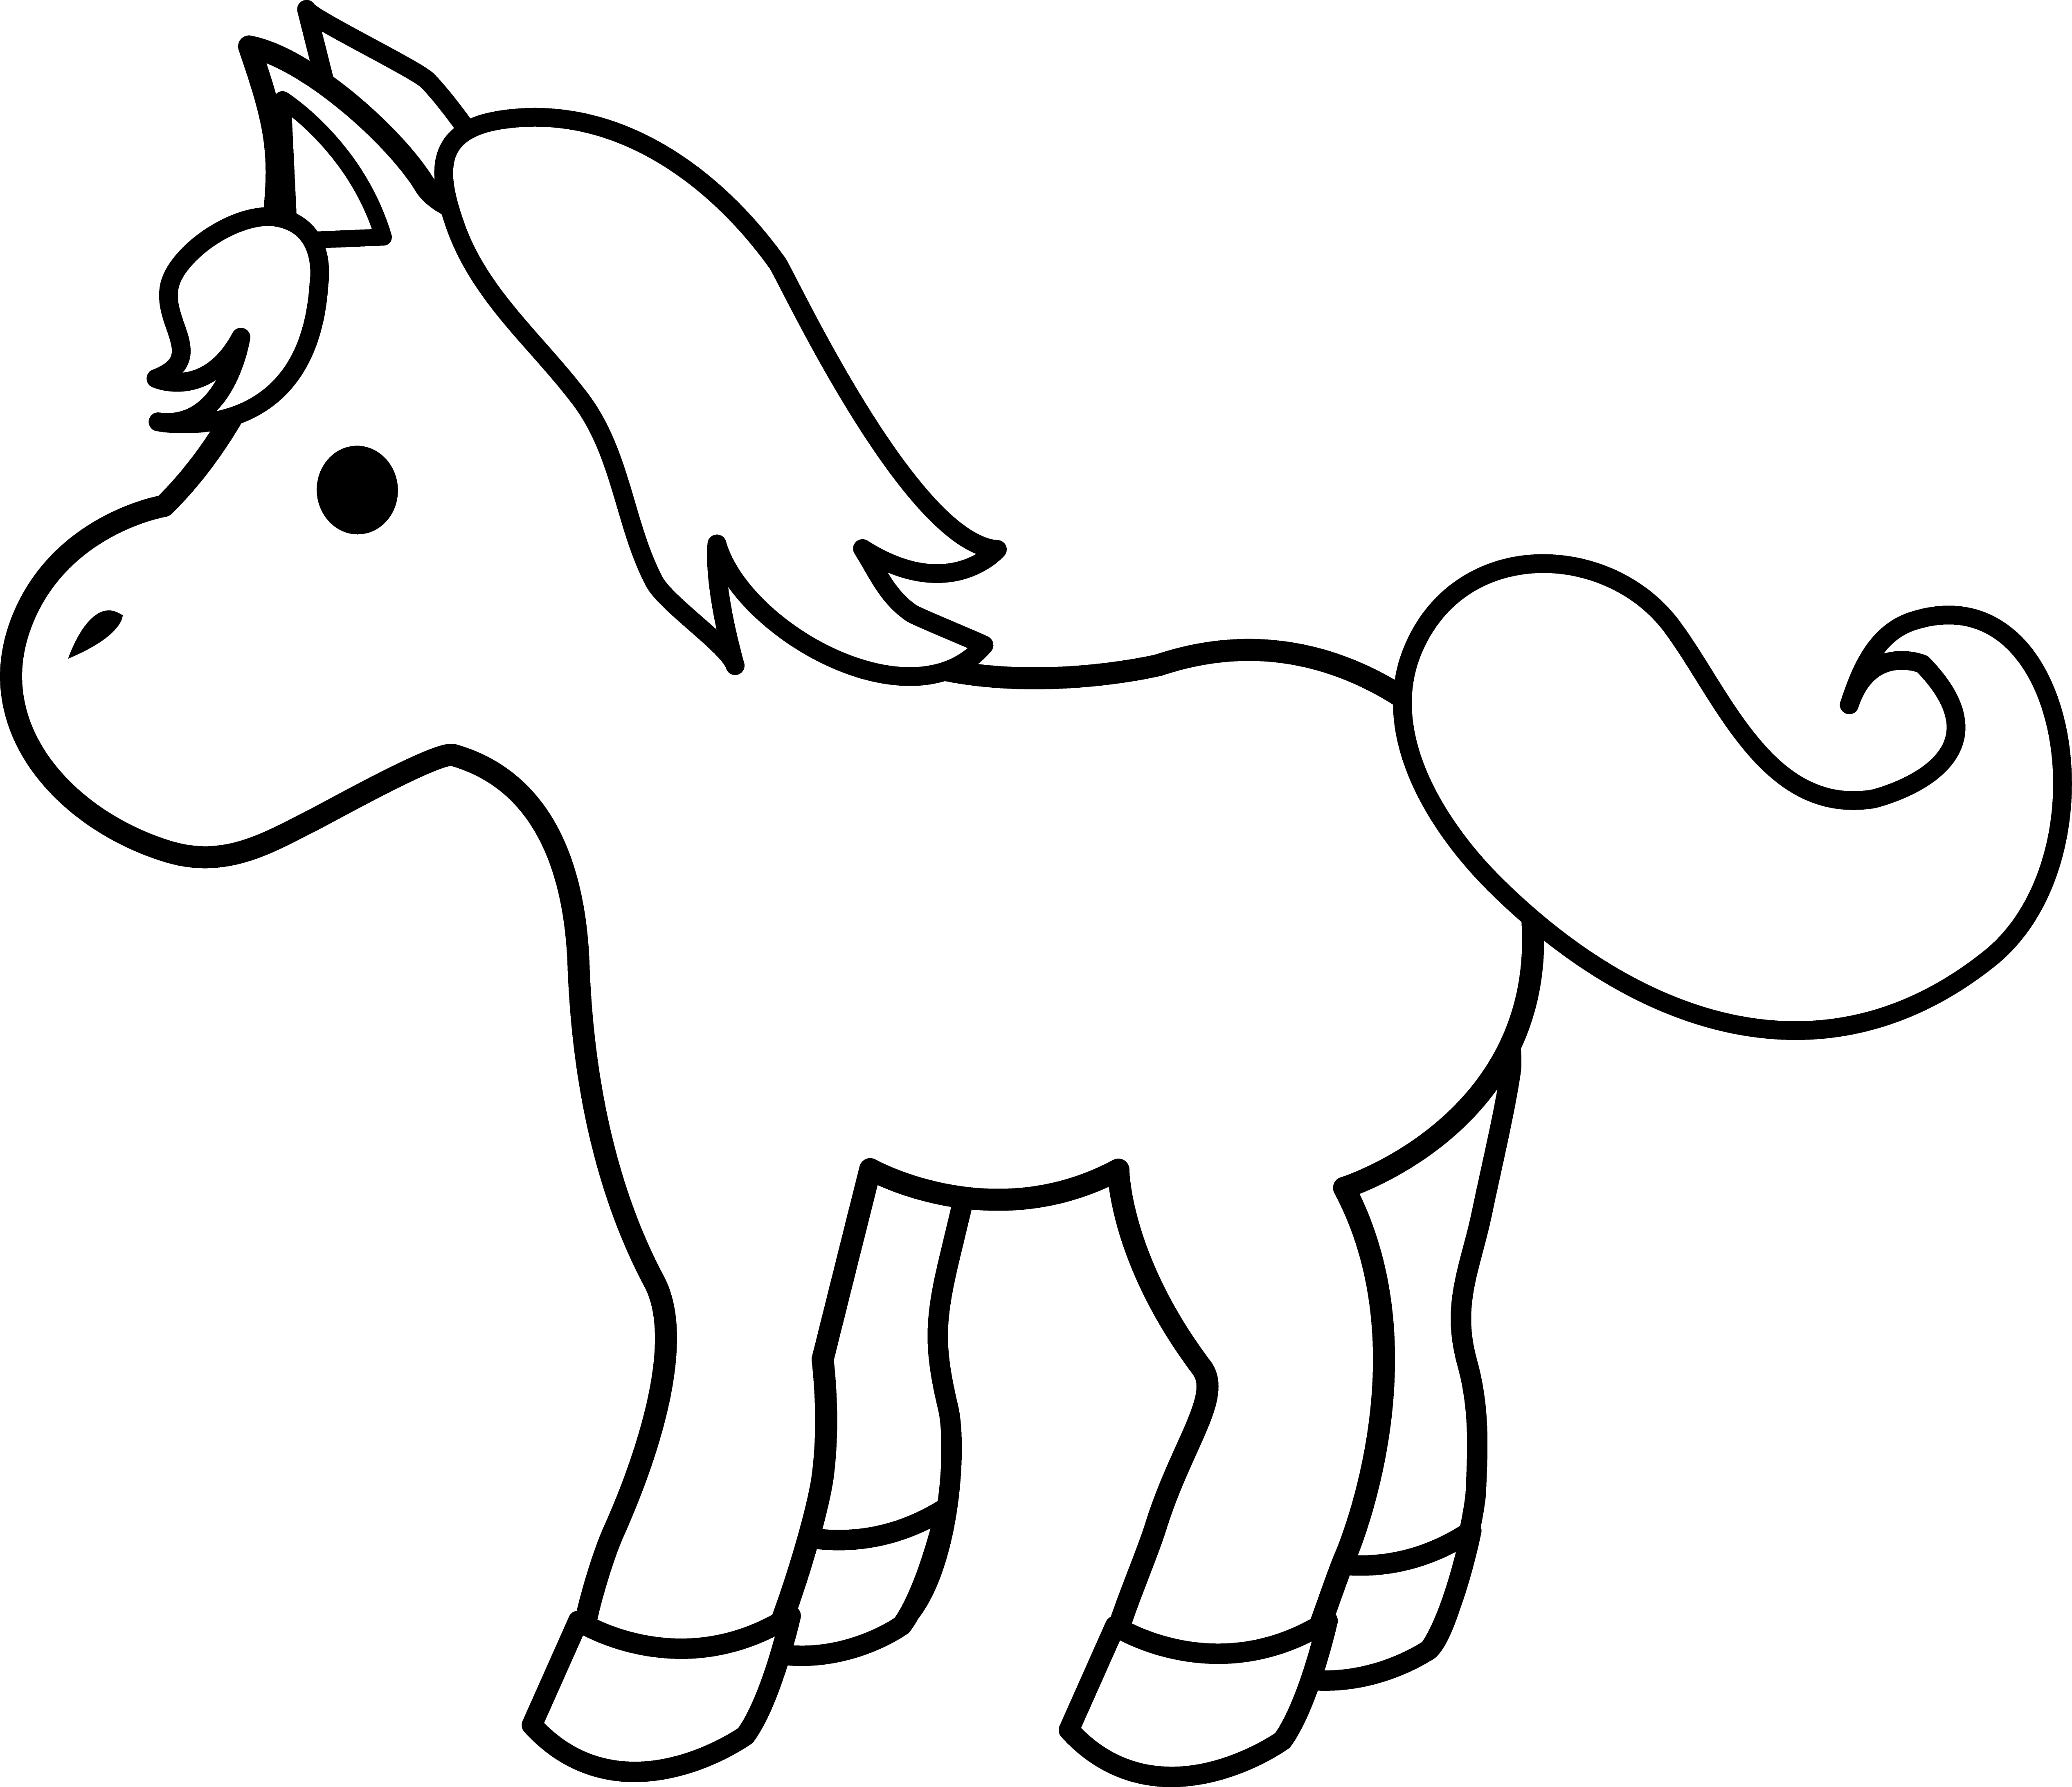 Clipart horse simple. Cute cartoon baby images